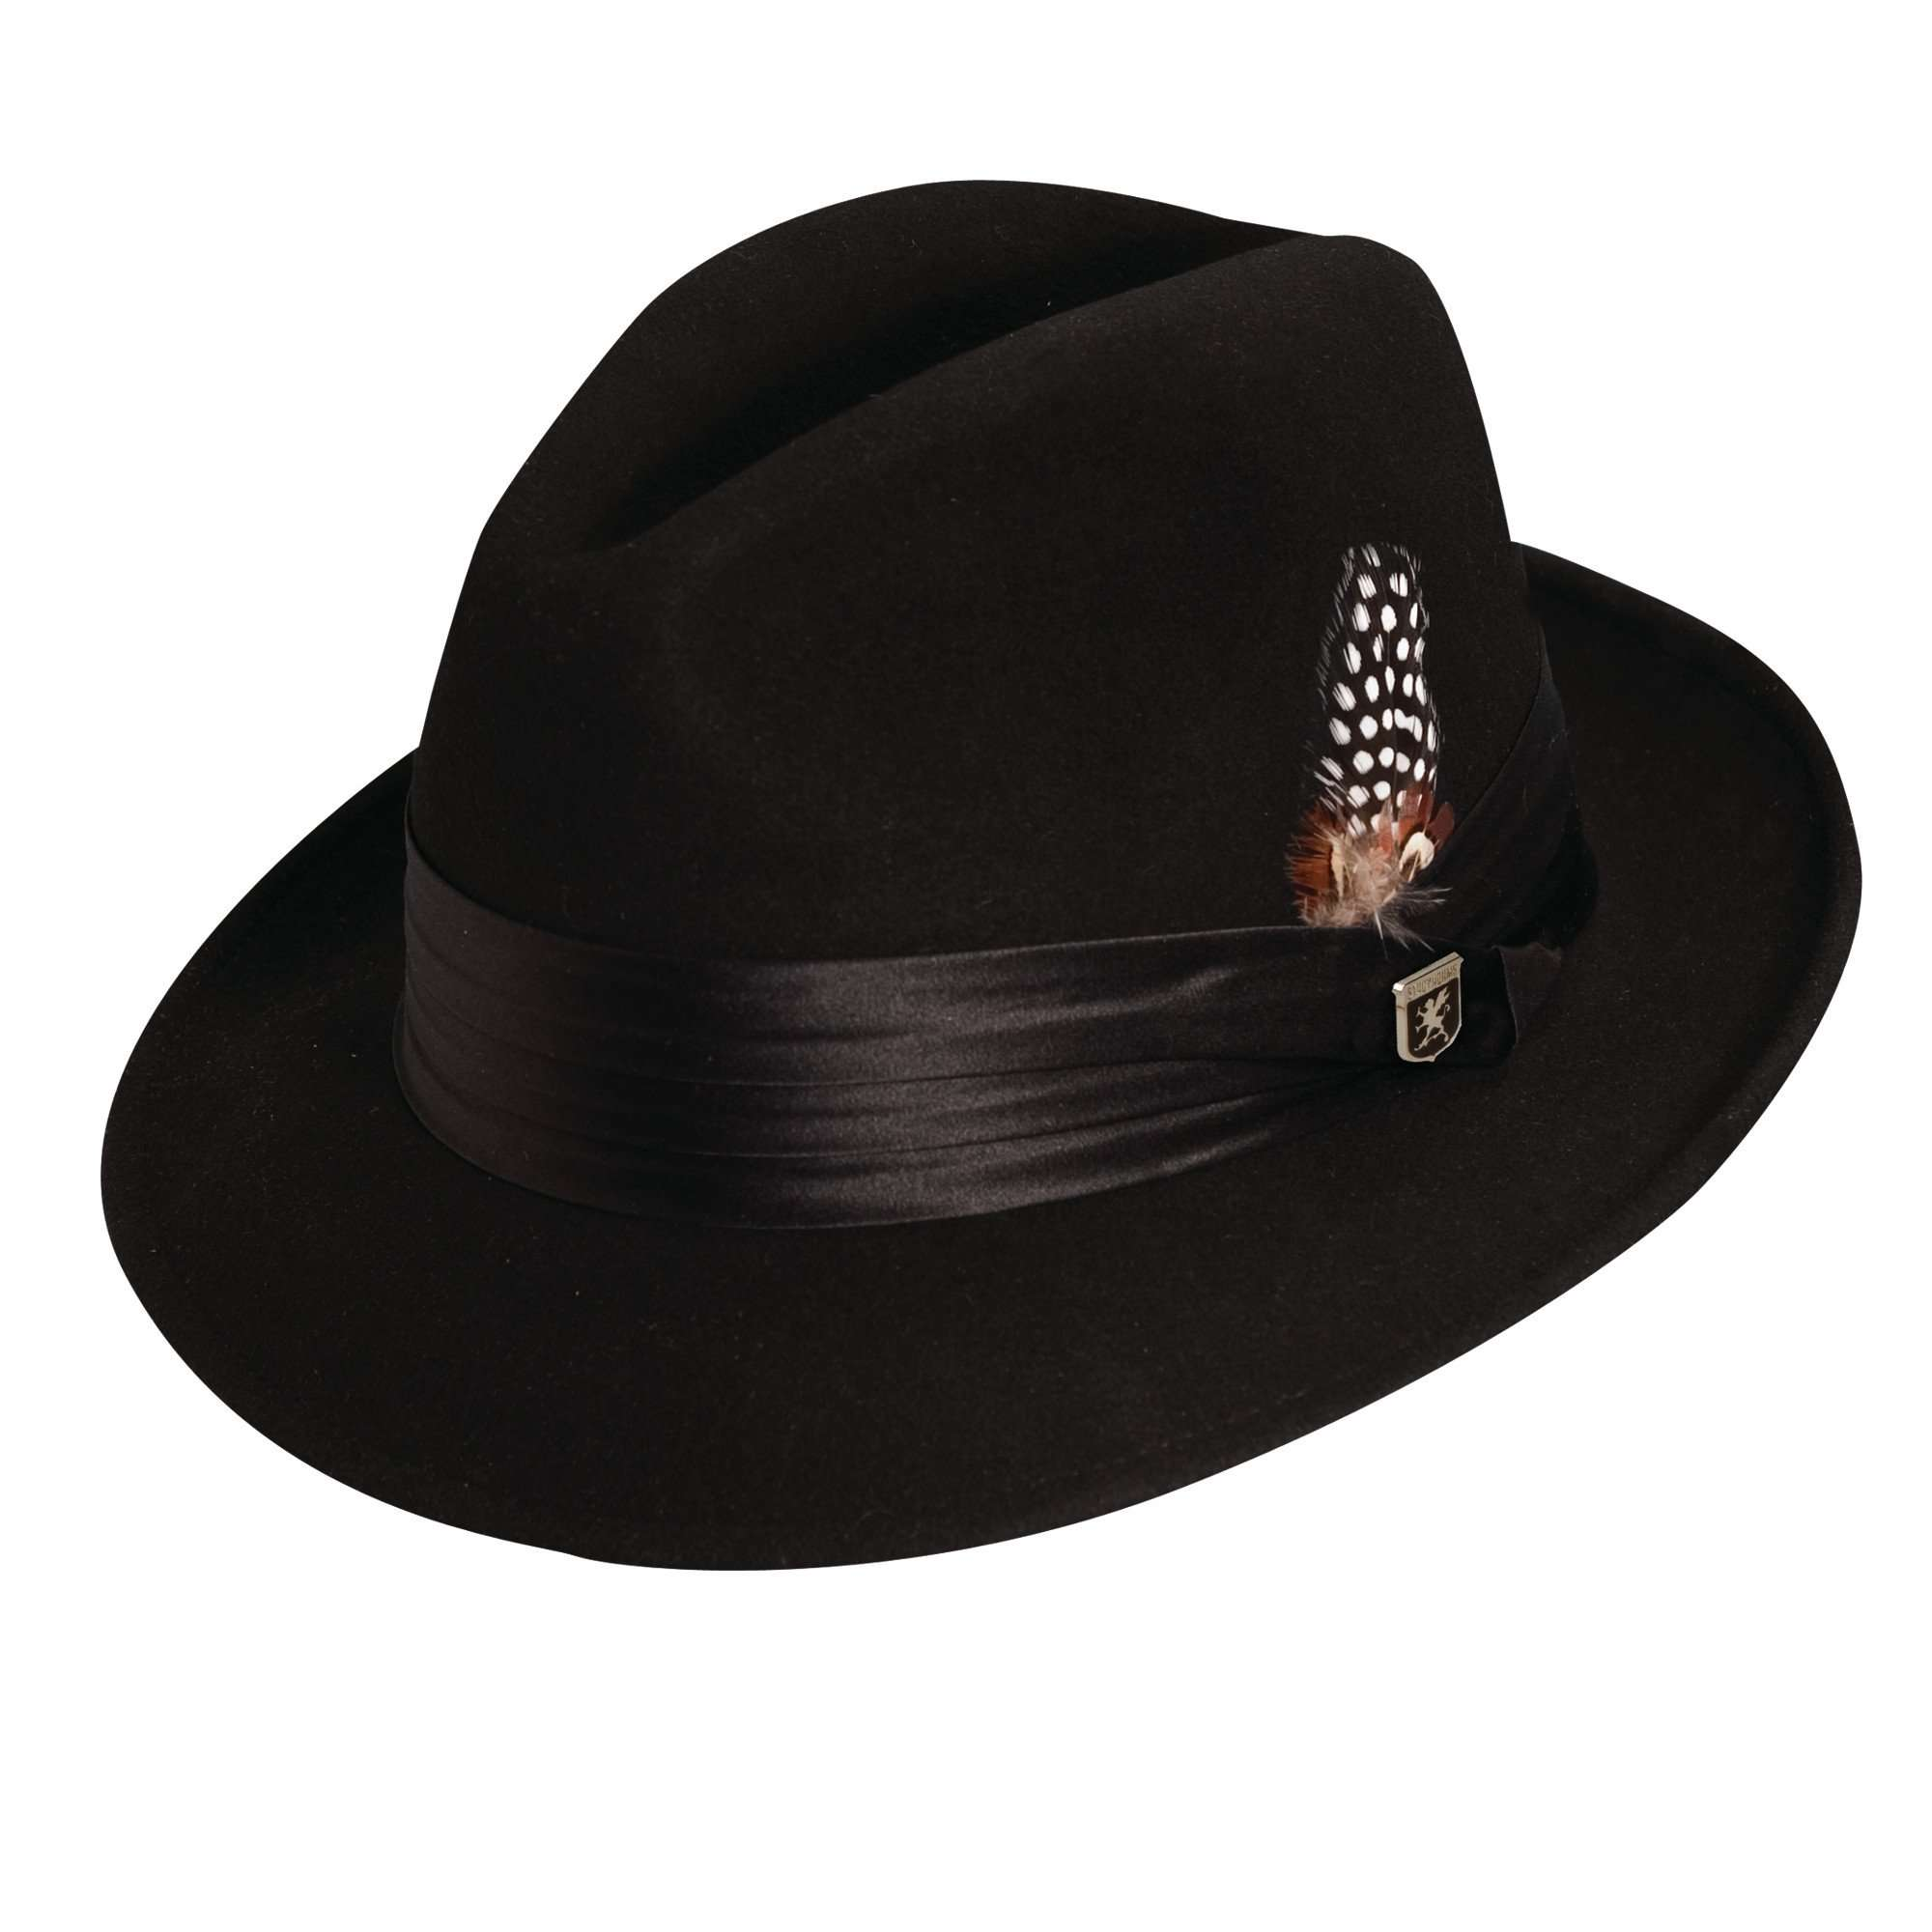 Stacy Adams Snap Brim Fedora - Black - SetarTrading Hats